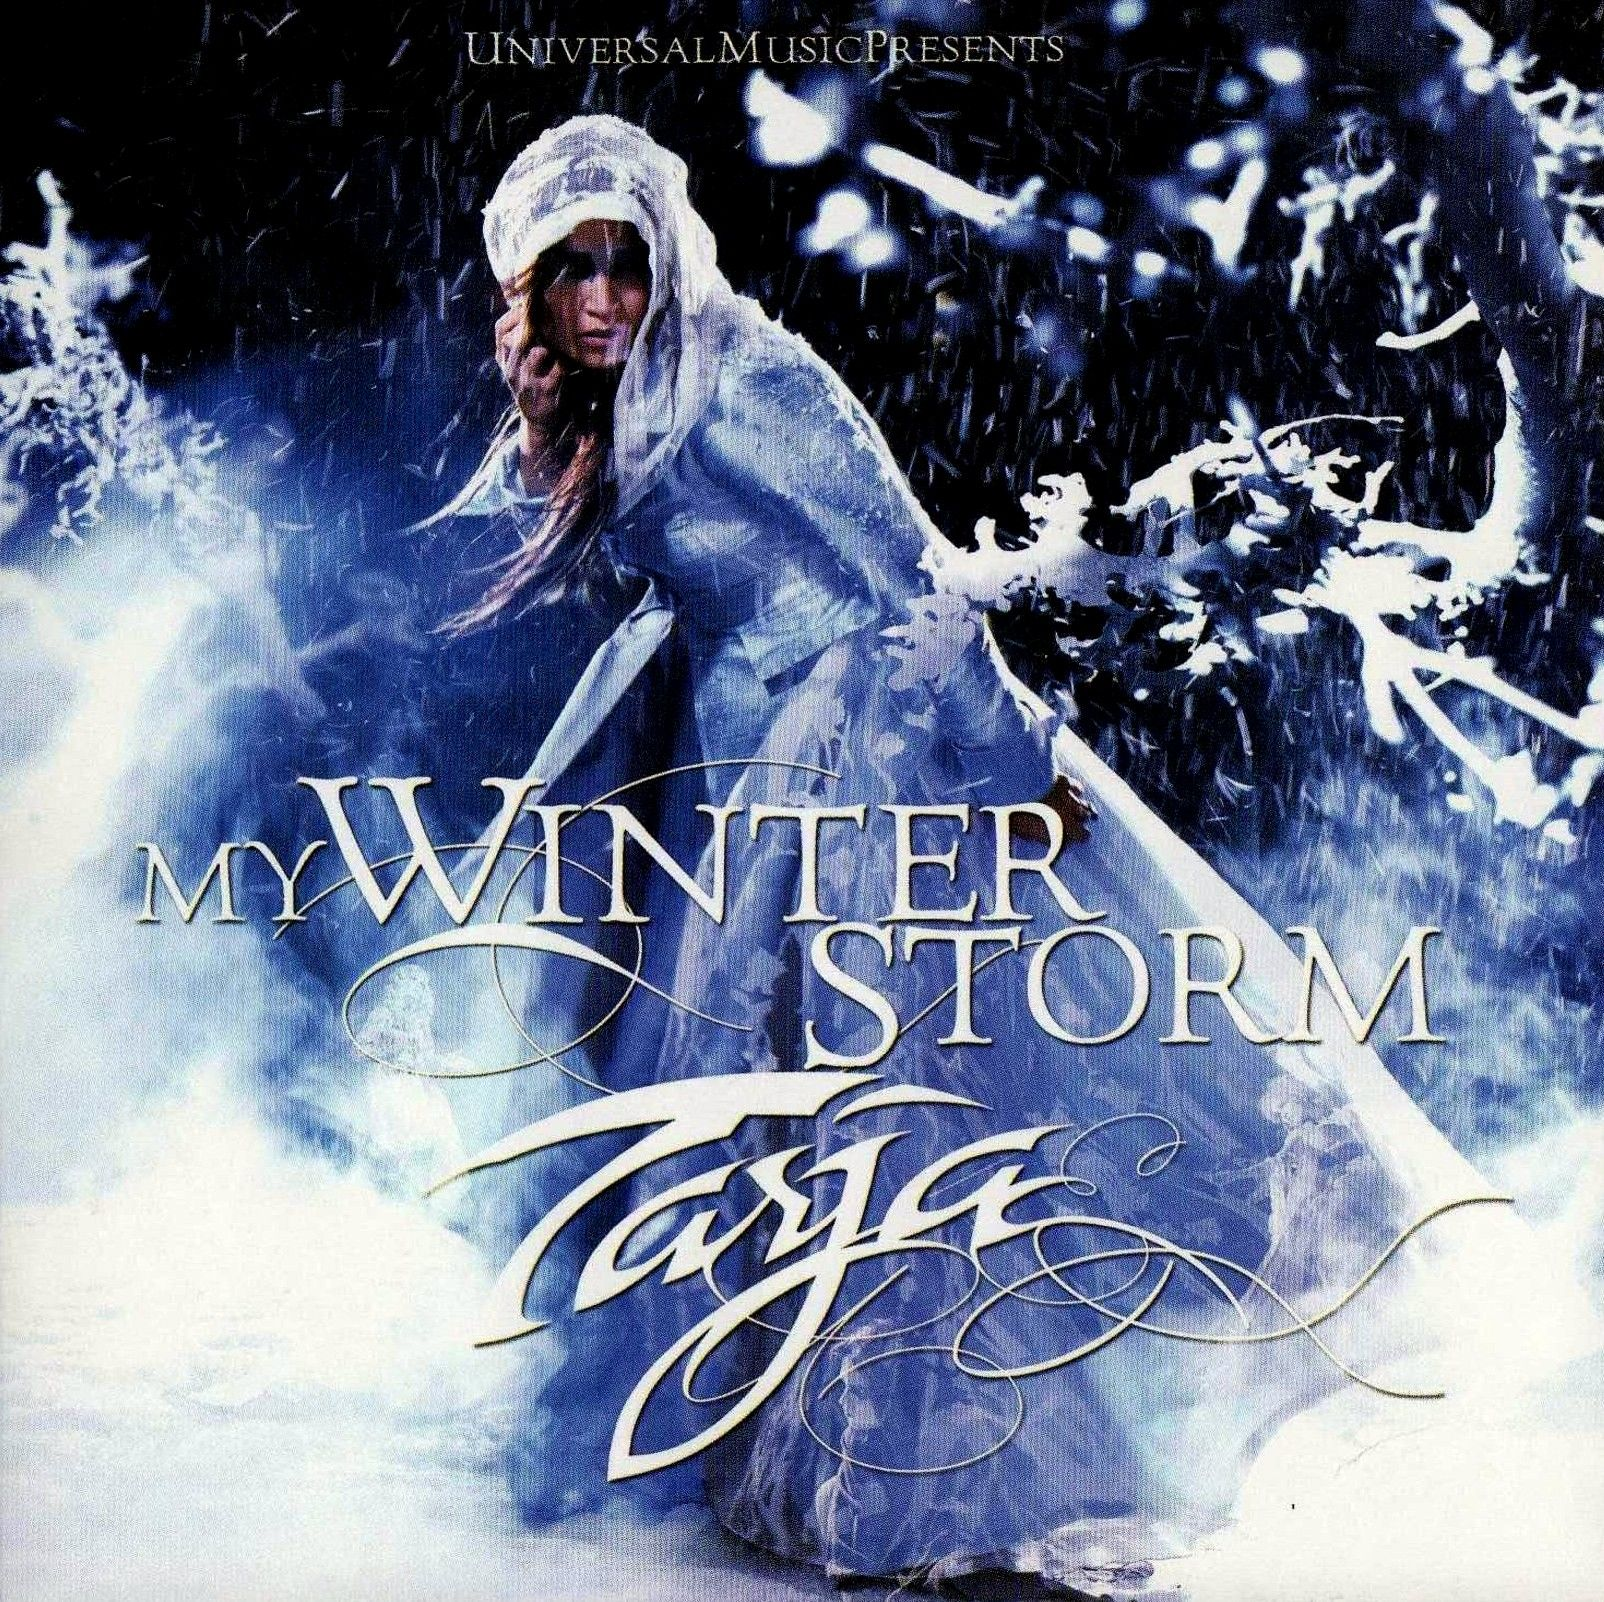 Tarja Turunen - My Winter Storm album cover